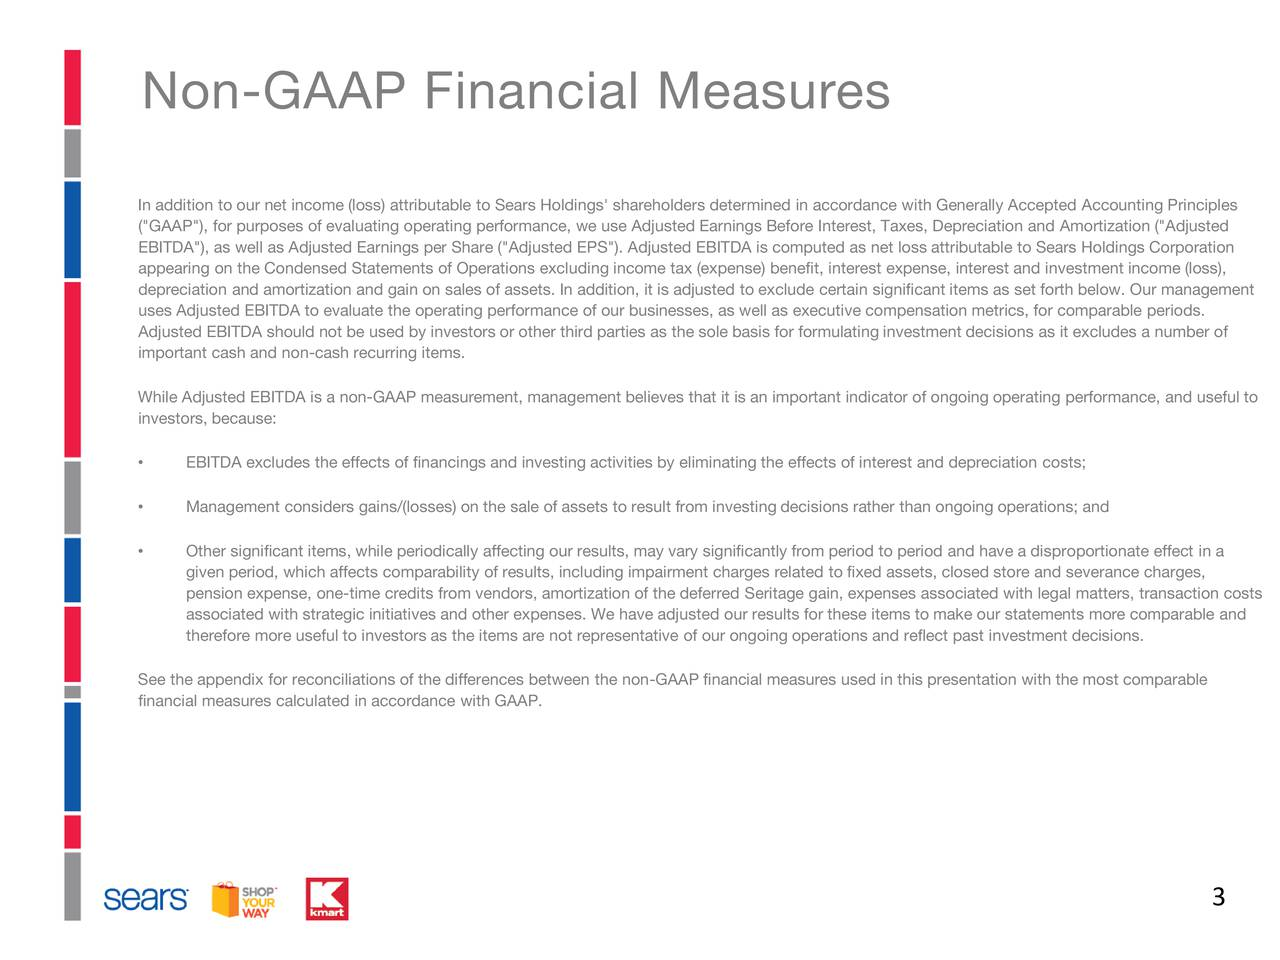 "In addition to our net income (loss) attributable to Sears Holdings' shareholders determined in accordance with Generally Accepted Accounting Principles (""GAAP""), for purposes of evaluating operating performance, we use Adjusted Earnings Before Interest, Taxes, Depreciation andAmortization (""Adjusted EBITDA""), as well as Adjusted Earnings per Share (""Adjusted EPS""). Adjusted EBITDA is computed as net loss attributable to Sears Holdings Corporation appearing on the Condensed Statements of Operations excluding income tax (expense) benefit,interest expense, interest and investmentincome (loss), depreciation and amortization and gain on sales of assets. In addition, it is adjusted to exclude certain significant items a s set forth below. Our management uses Adjusted EBITDA to evaluate the operating performance of our businesses, as well as executive compensation metrics, forcomparable periods. Adjusted EBITDA should not be used by investors or other third parties as the sole basis for formulating investment decisions as it excludes a number of important cash and non-cash recurring items. While Adjusted EBITDA is a non-GAAP measurement, management believes that it is an important indicator of ongoing operating performance, and useful to investors, because: EBITDA excludes the effects of financings and investing activities by eliminating the effects of interest and depreciation costs; Management considers gains/(losses) on the sale of assets to result from investing decisions rather than ongoing operations; and Other significant items, while periodically affecting our results, may vary significantly from period to period and have a dispr oportionate effect in a given period, which affects comparability of results, including impairment charges related to fixed assets, closed store andseverance charges, pension expense, one-time credits from vendors, amortization of the deferred Seritage gain, expenses associated with legal matters,transaction costs associated with strategic initiatives and other expenses. We have adjusted our results for these items to make our statements more comparable and therefore more useful to investors as the items are not representative of our ongoing operations and reflect past investmentdecisions. See the appendix for reconciliations of the differences between the non-GAAP financial measures used in this presentation with the most comparable financial measures calculated in accordance with GAAP. 3"